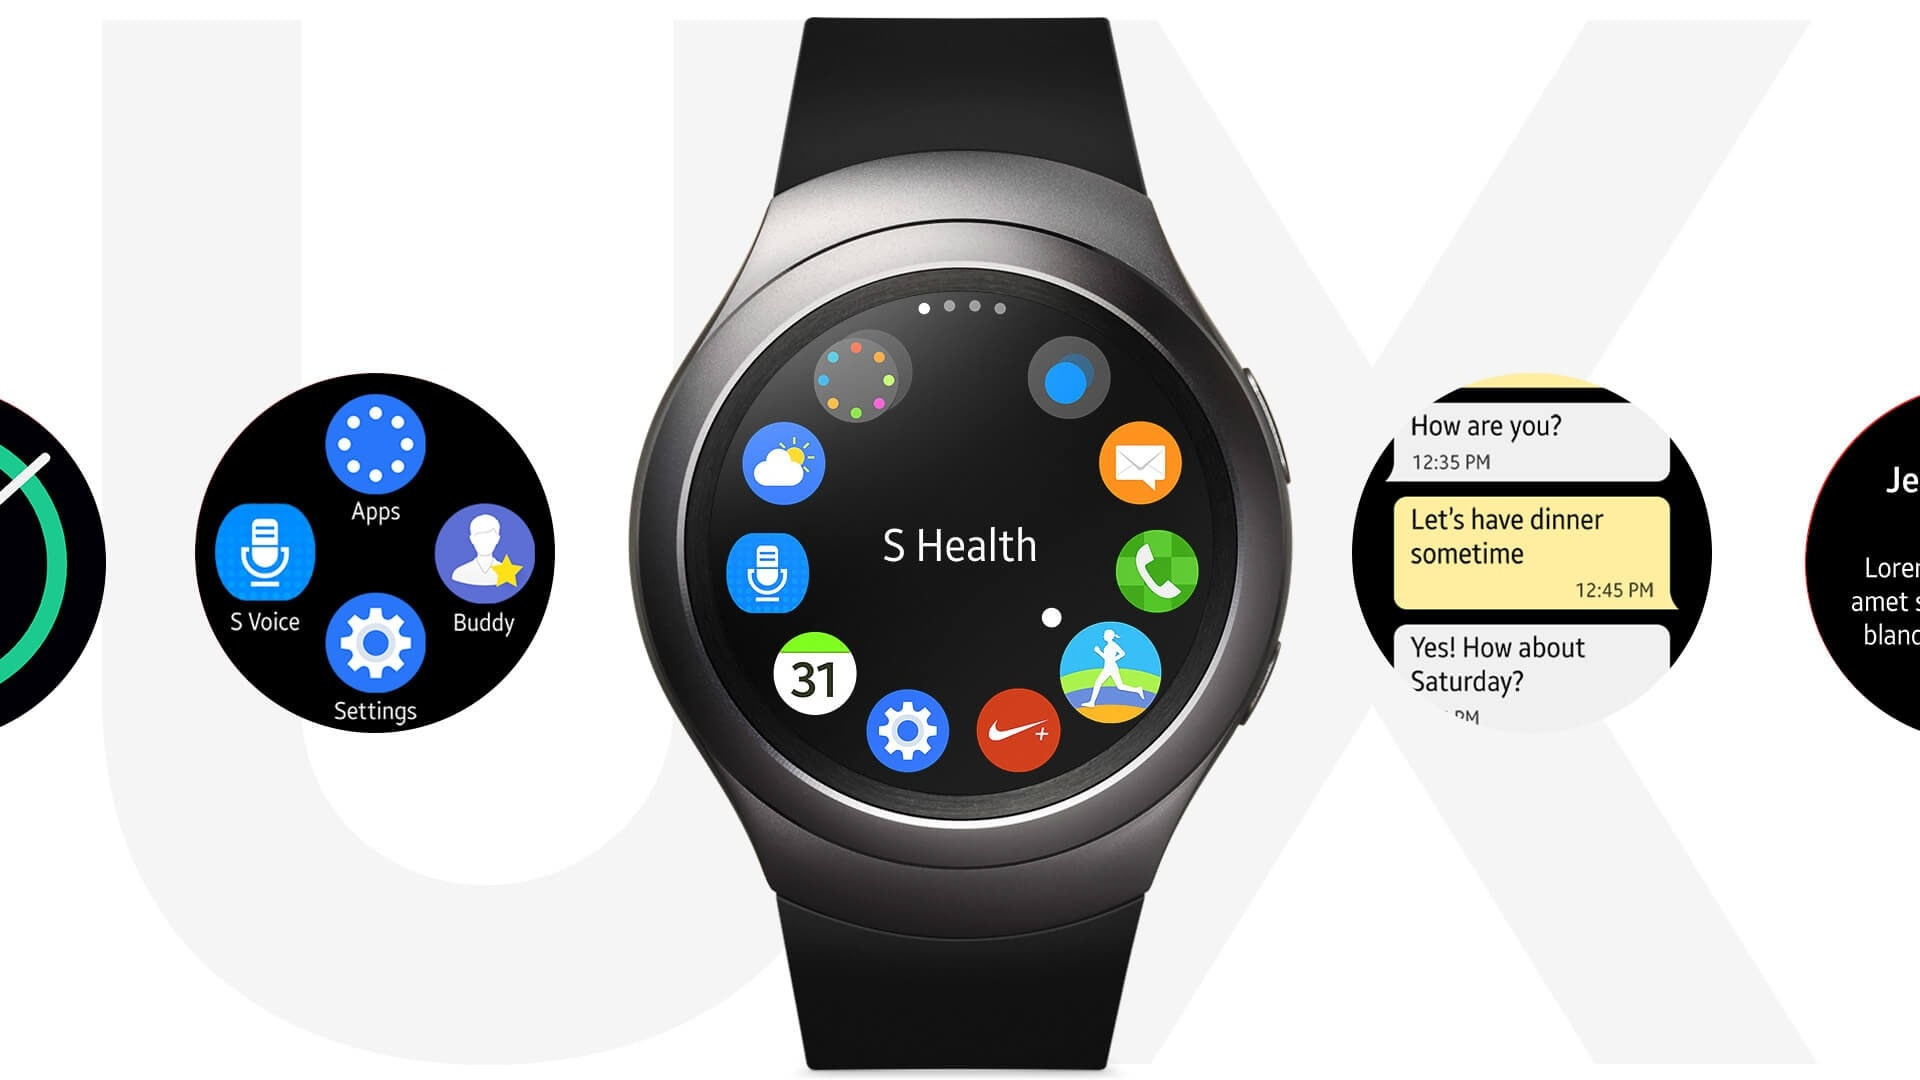 Animation of navigating Gear S2 by rotating the Bezel